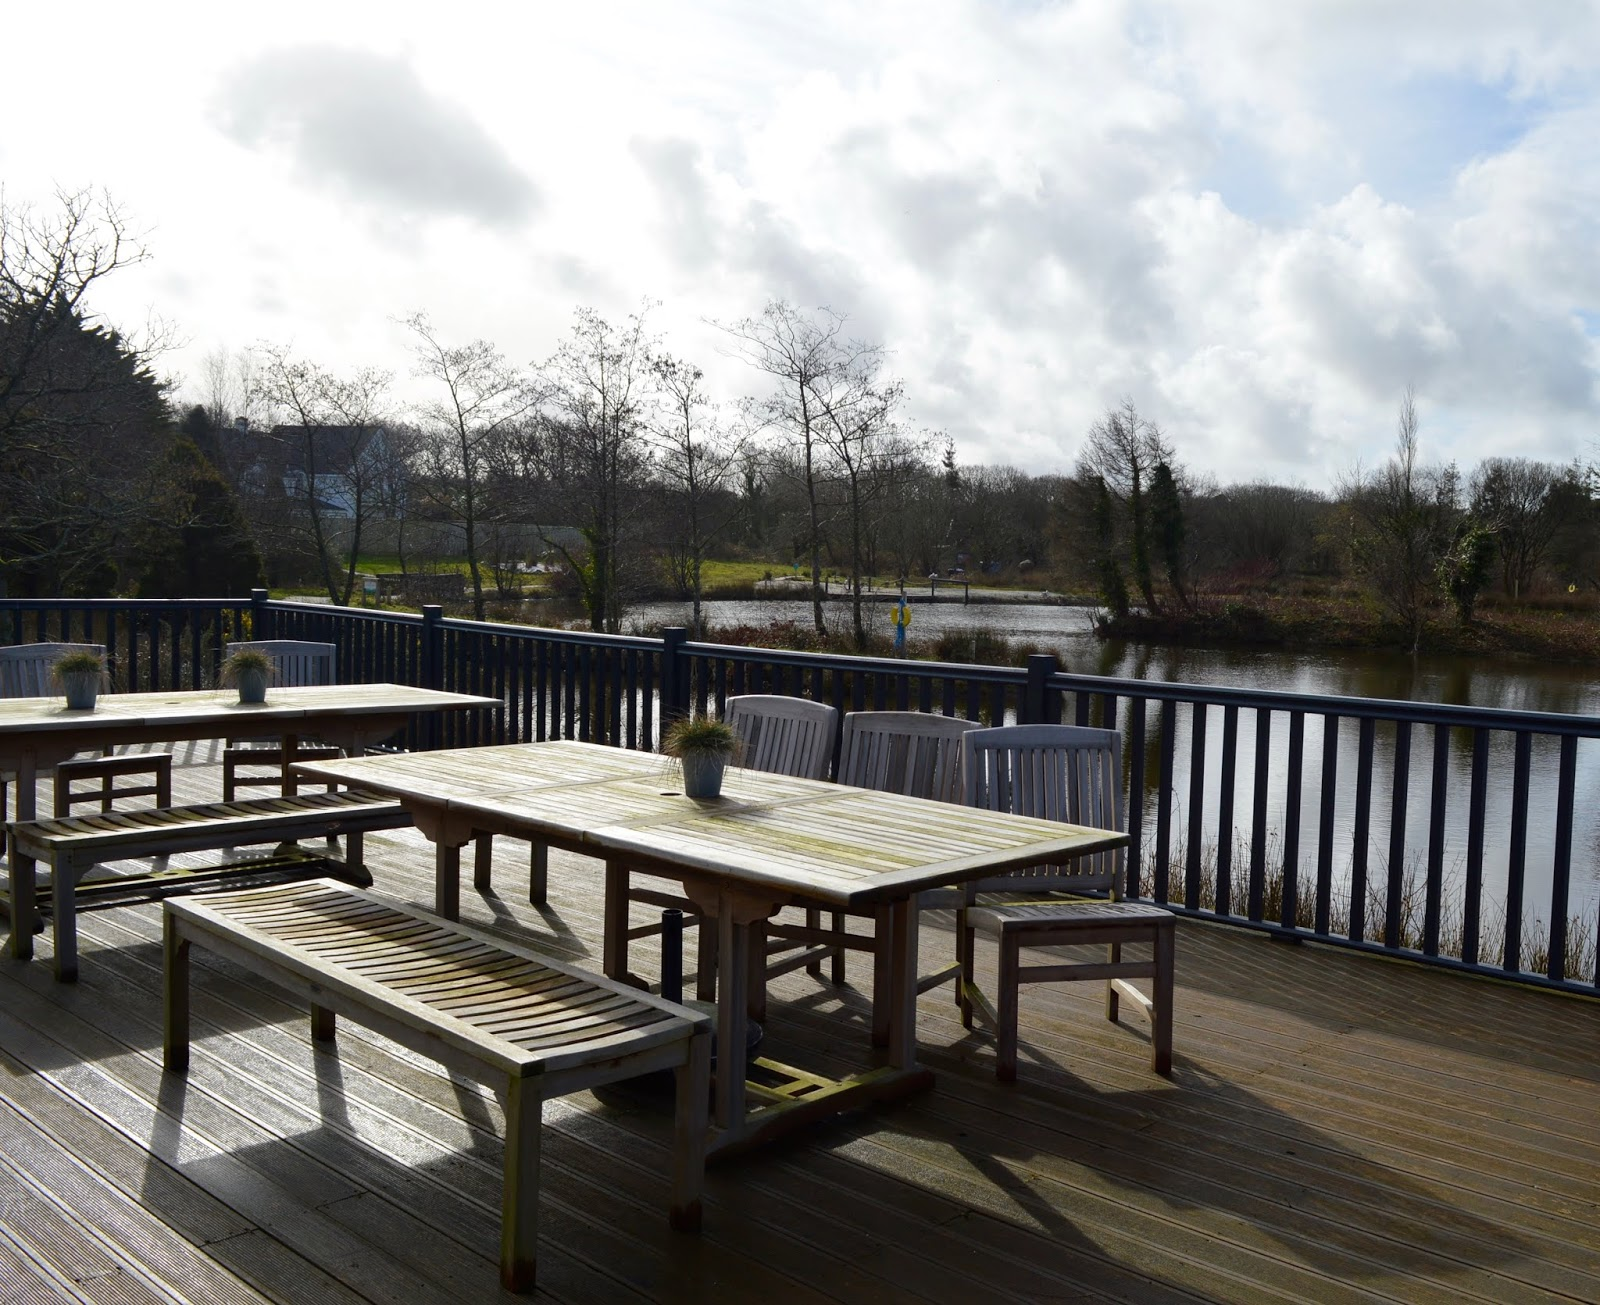 Waterside Cornwall Review | Self-Catering Lodges Near The Eden Project - terrace overlooking lake